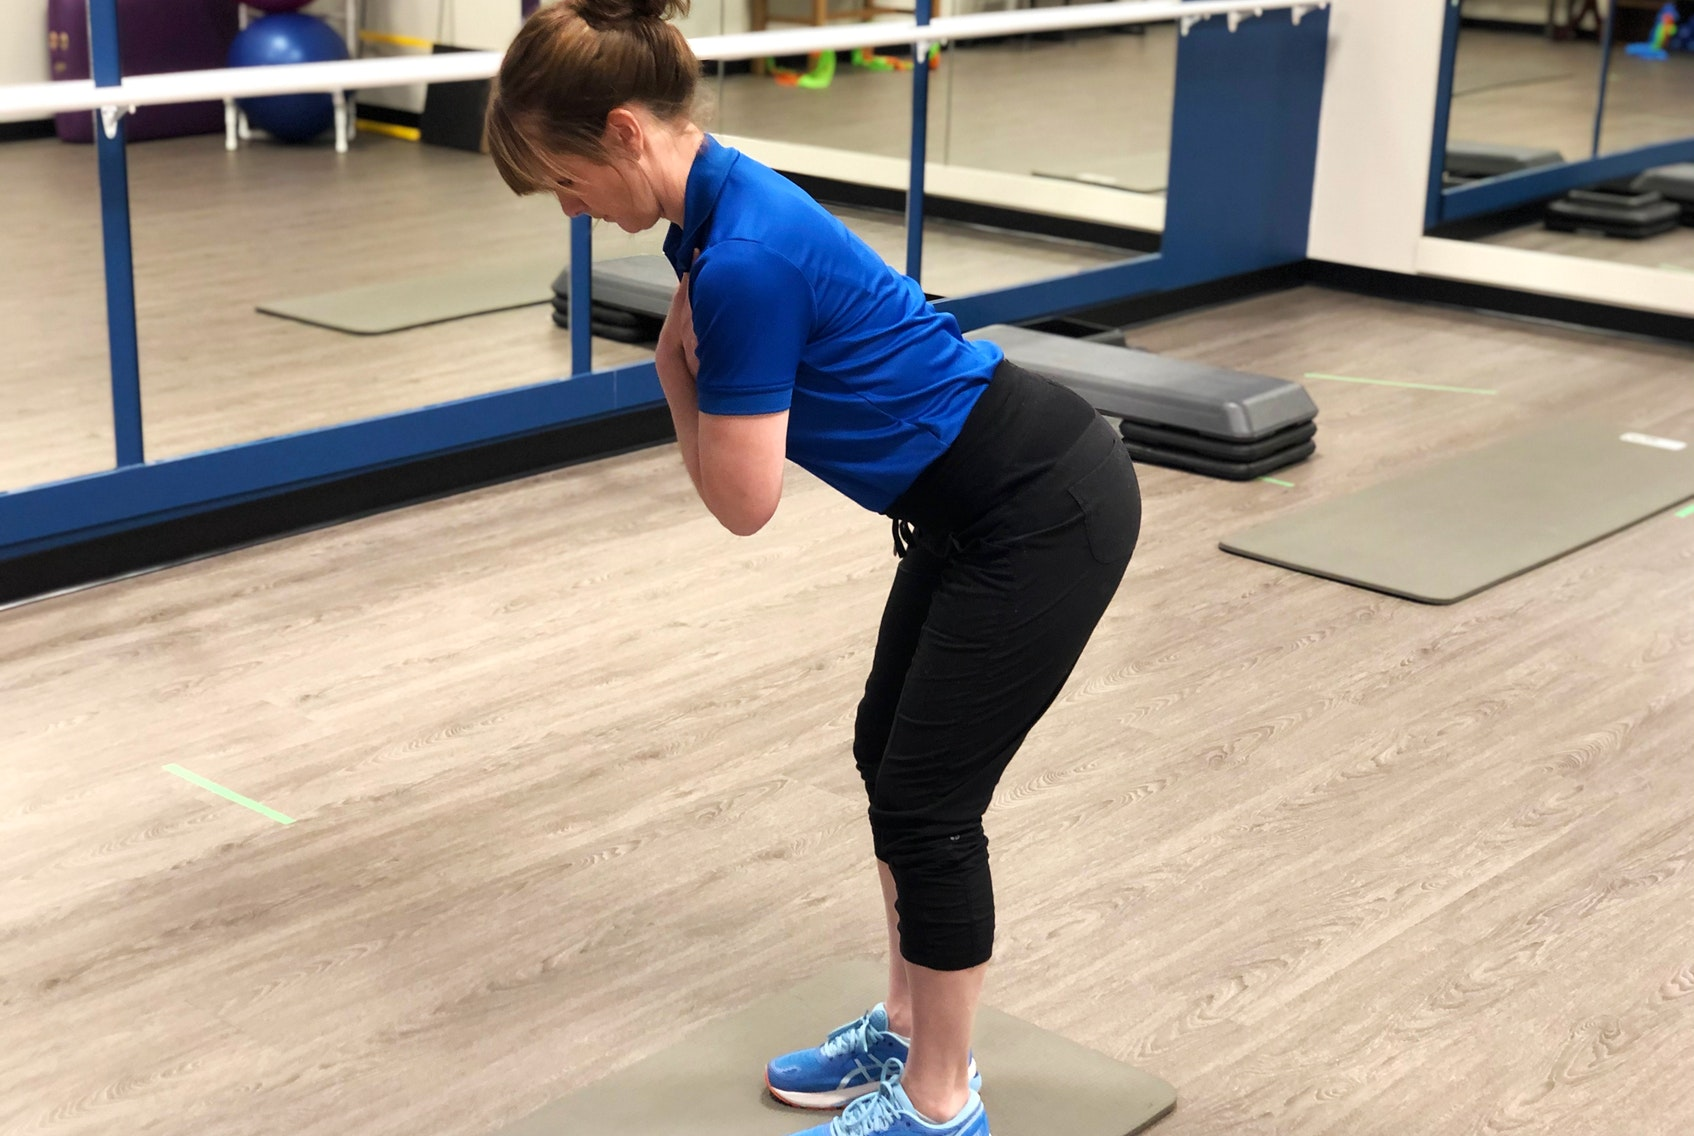 Best posture for lifting to protect lower back